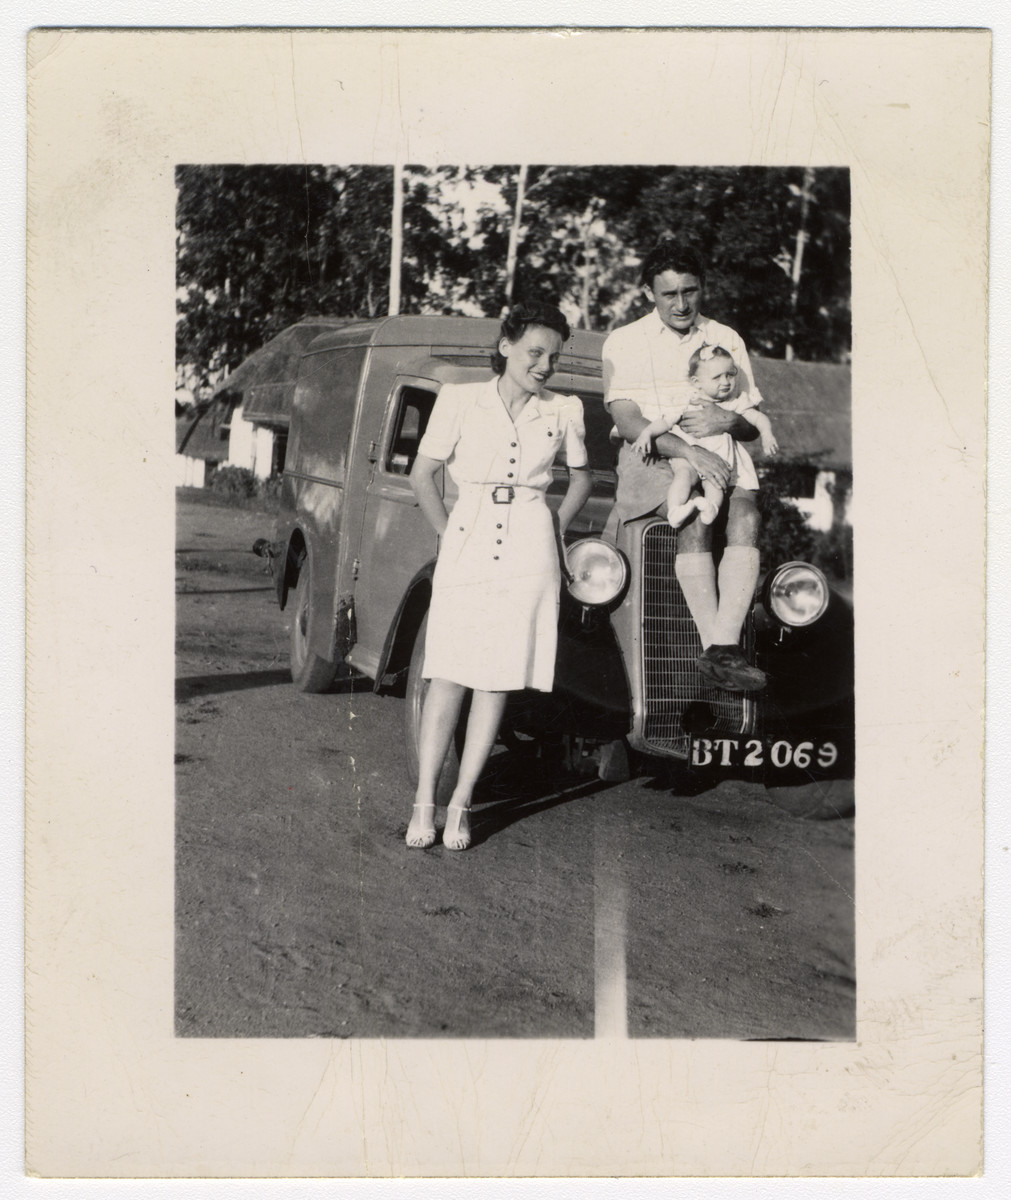 A Jewish refugee family poses next to their automobile in Zomba, Nyasaland.  Pictured are Lily, Kalman and Ruth Haber.